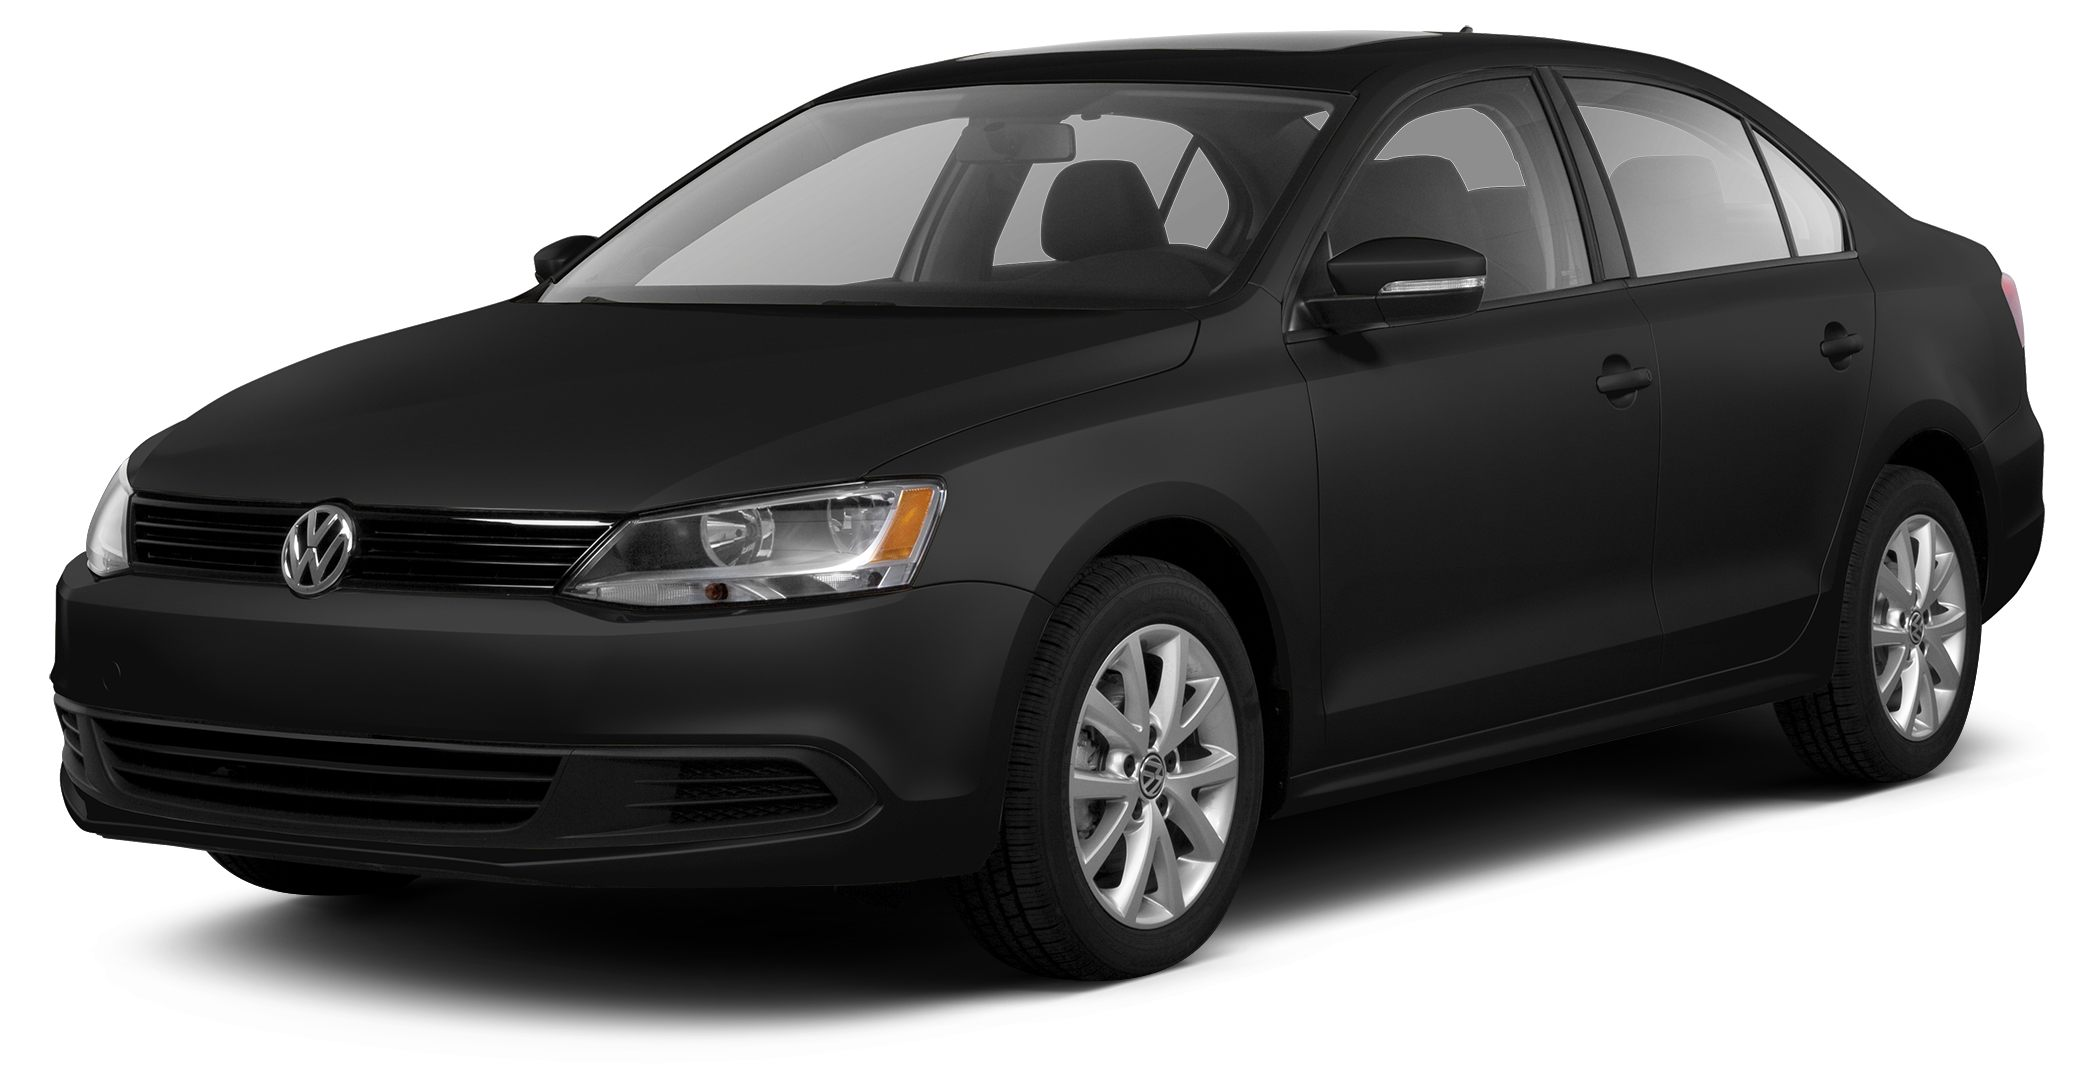 2013 Volkswagen Jetta 20 TDI Turbocharged A great deal in Fall River If youve been yearning fo